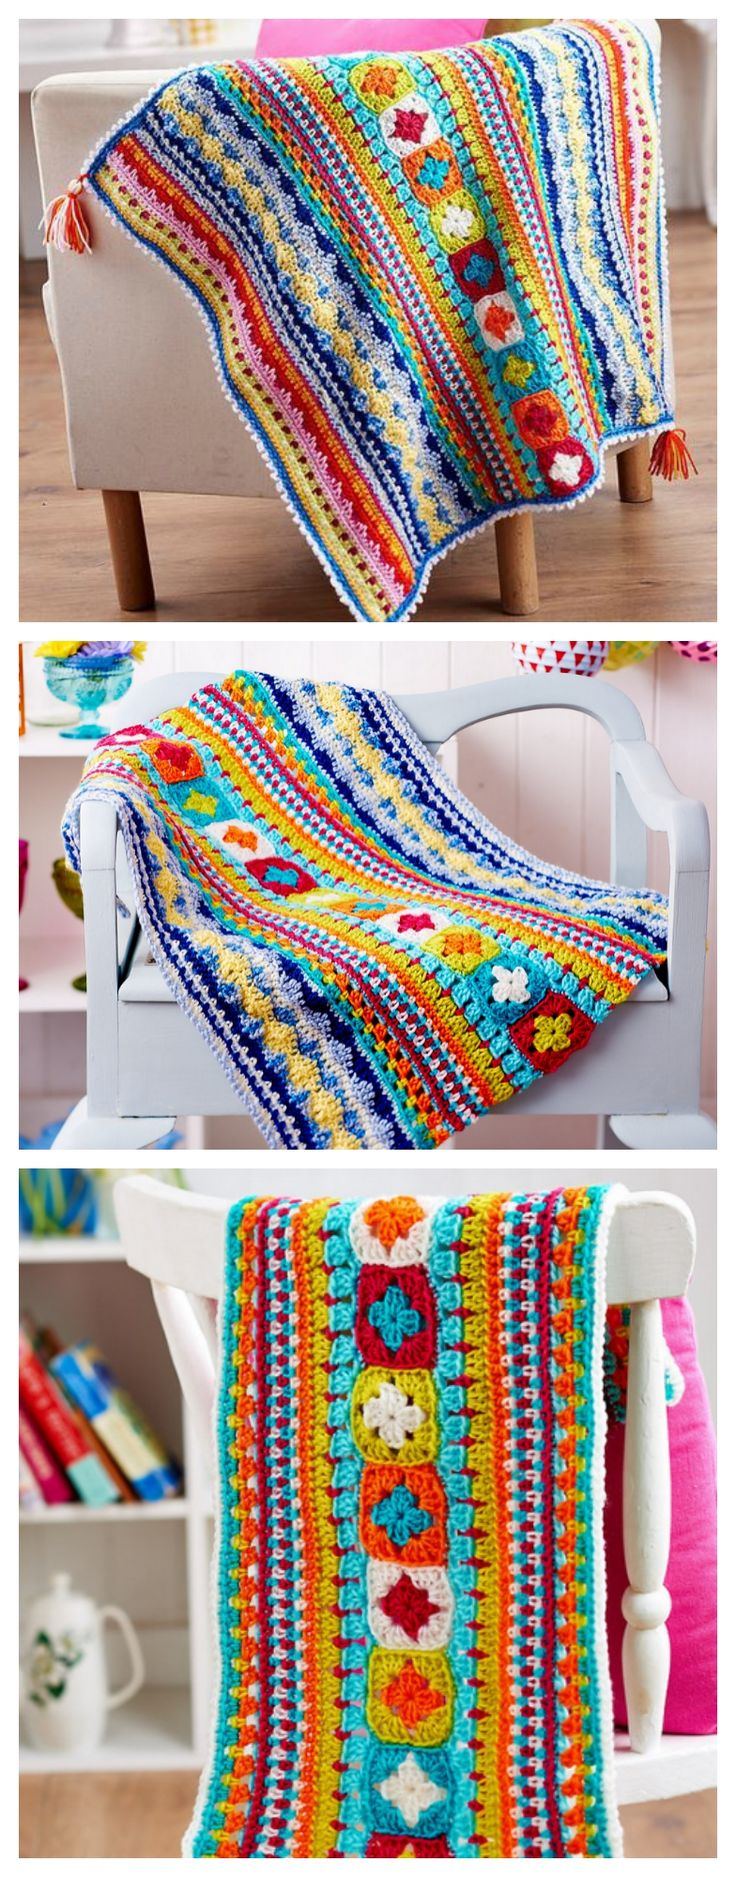 FREE PATTERN: 3-part  Crochet Sampler Blanket ༺